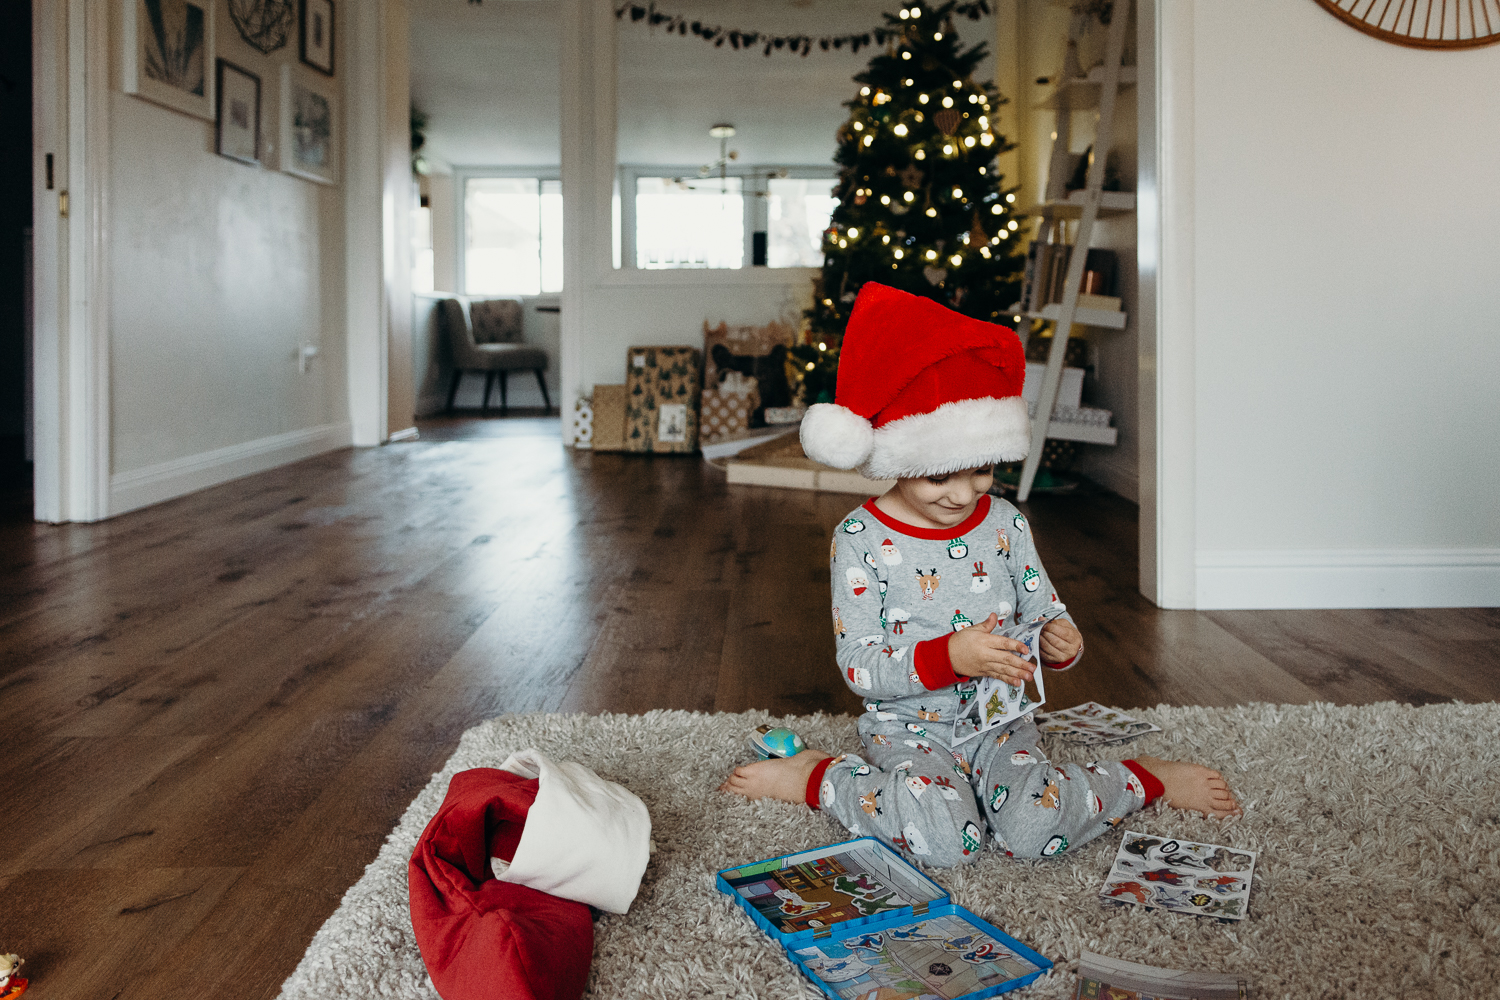 569a20a323b Christmas morning in photos + my two favorite gifts. — ashlee gadd